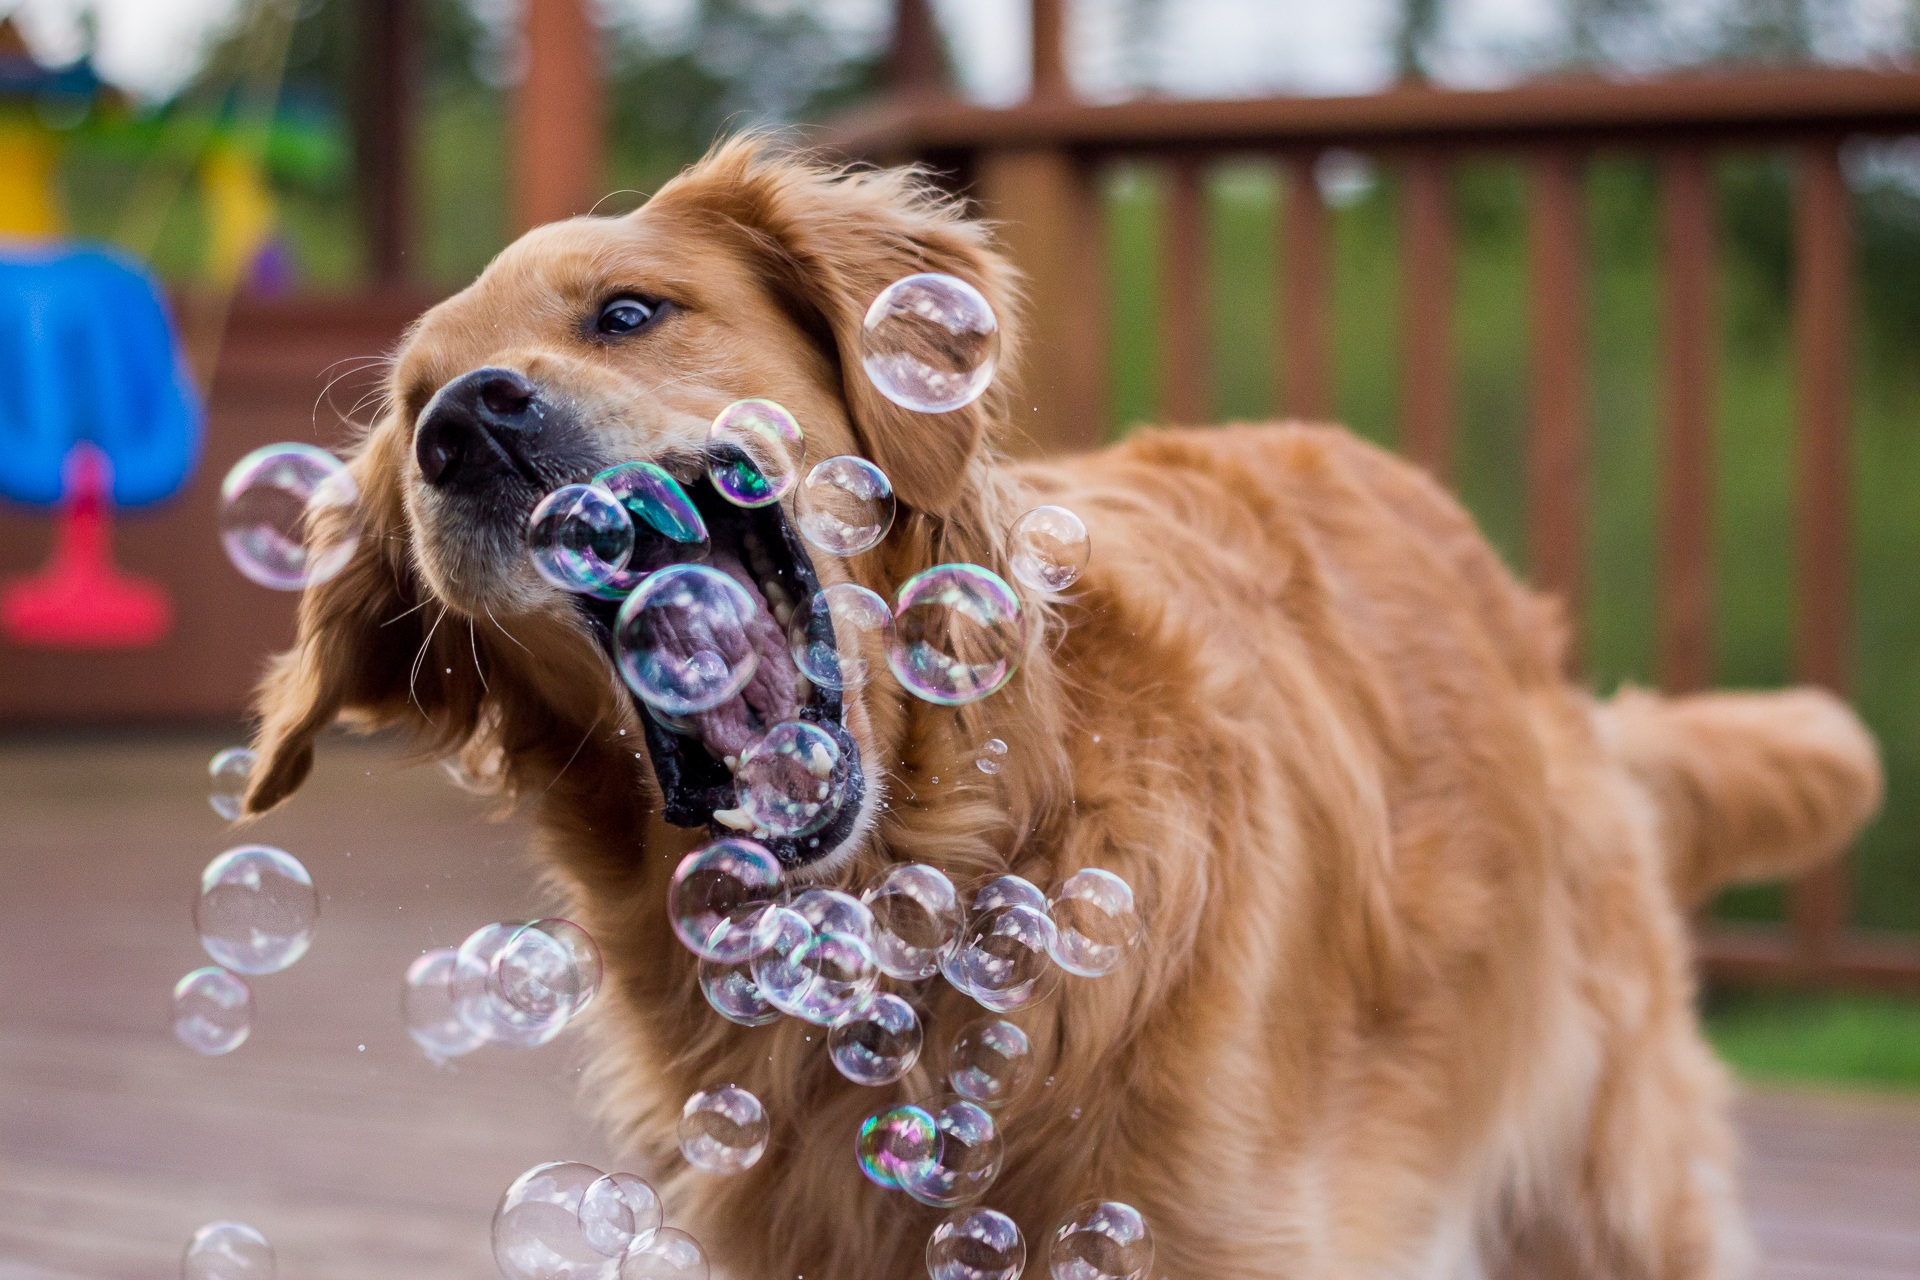 85511 download wallpaper Animals, Dog, Bubble, Bubbles, Playful screensavers and pictures for free